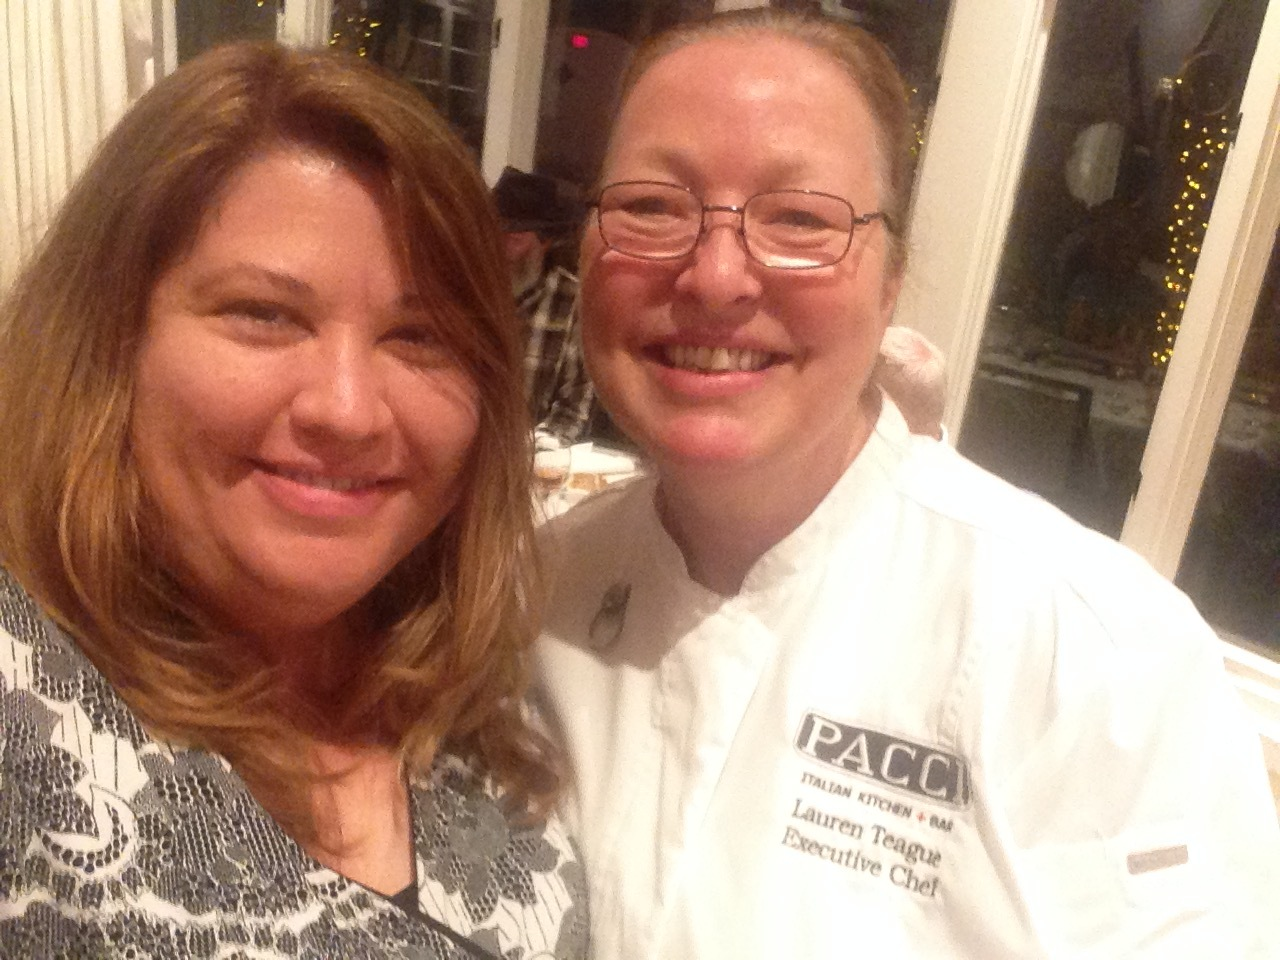 Me and Chef Lauren Teague of Pacci Italian Kitchen